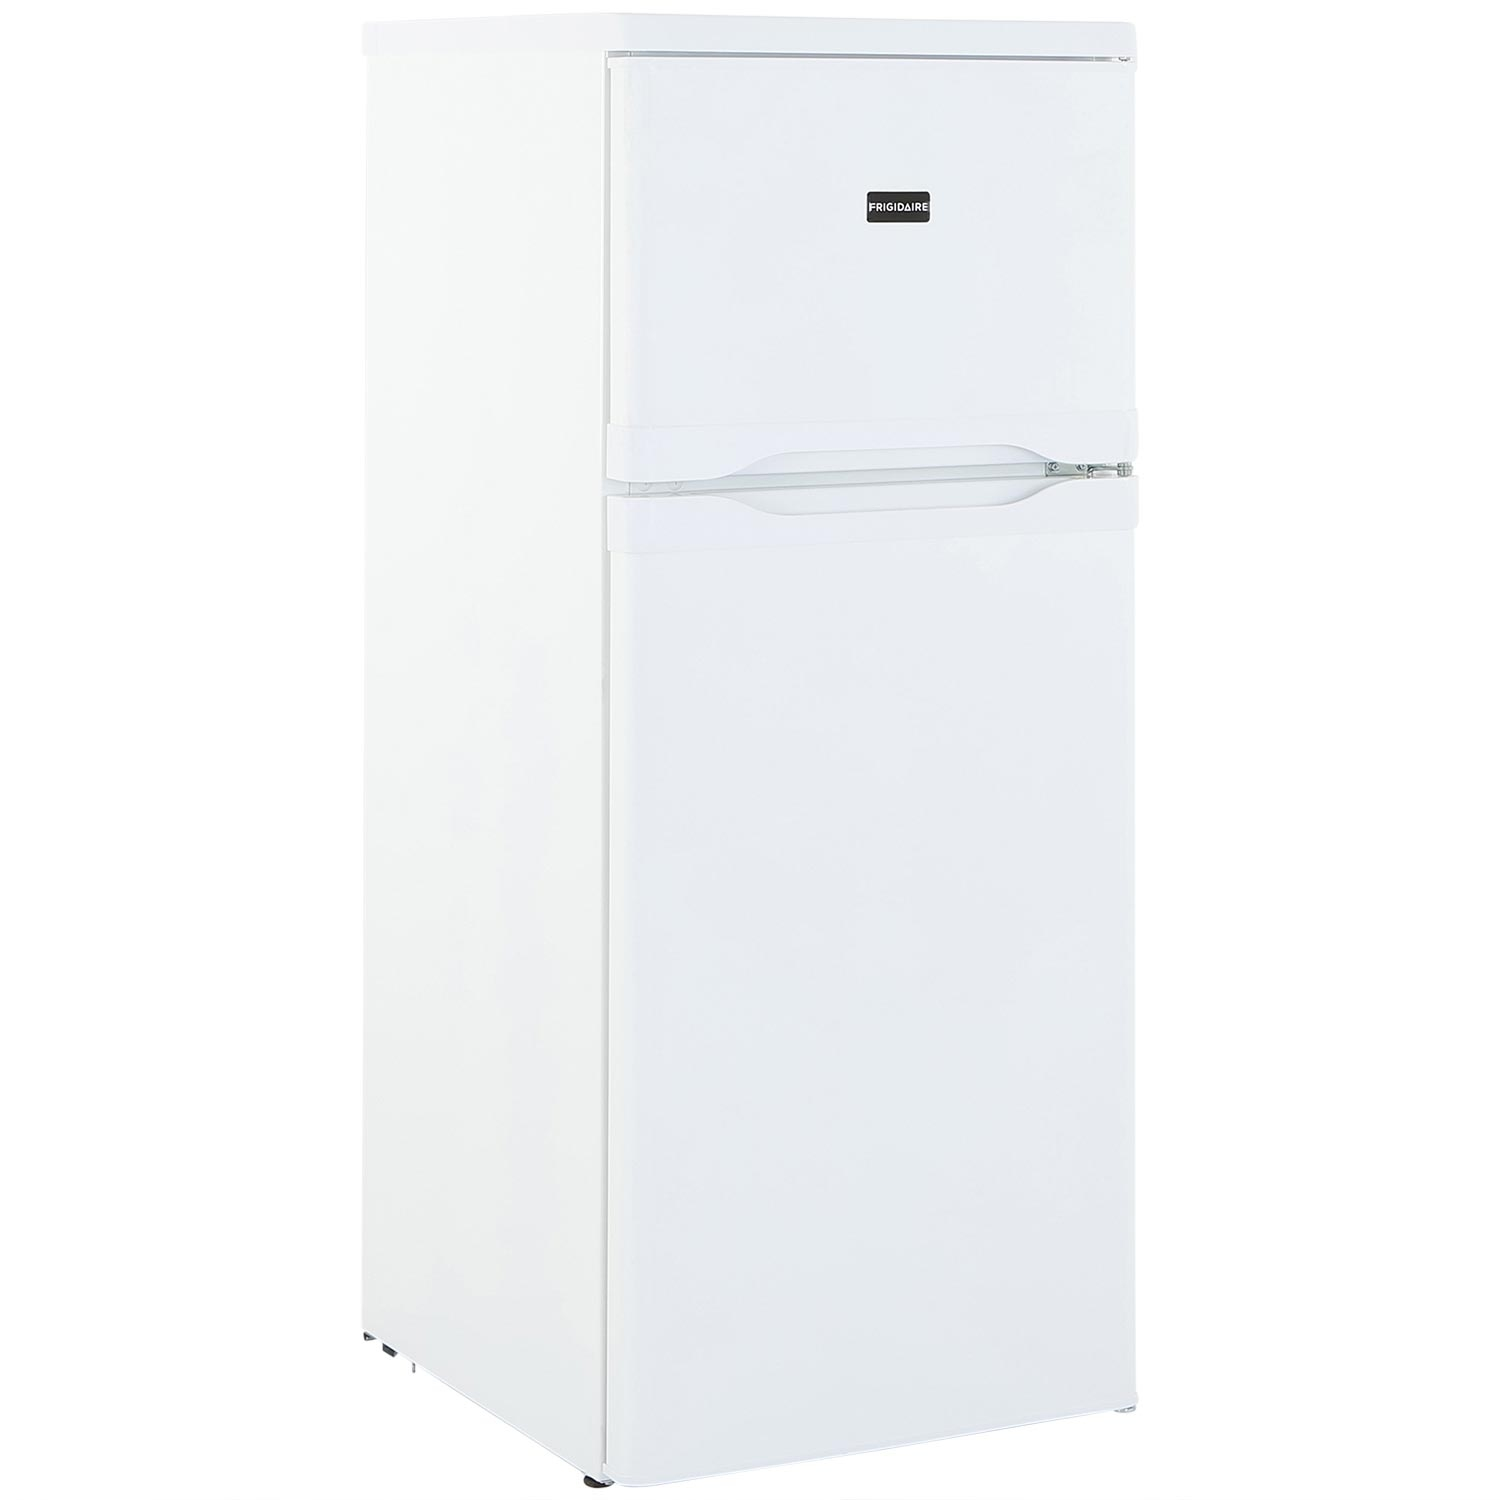 Frigidaire Compact Fridge Freezer - 1